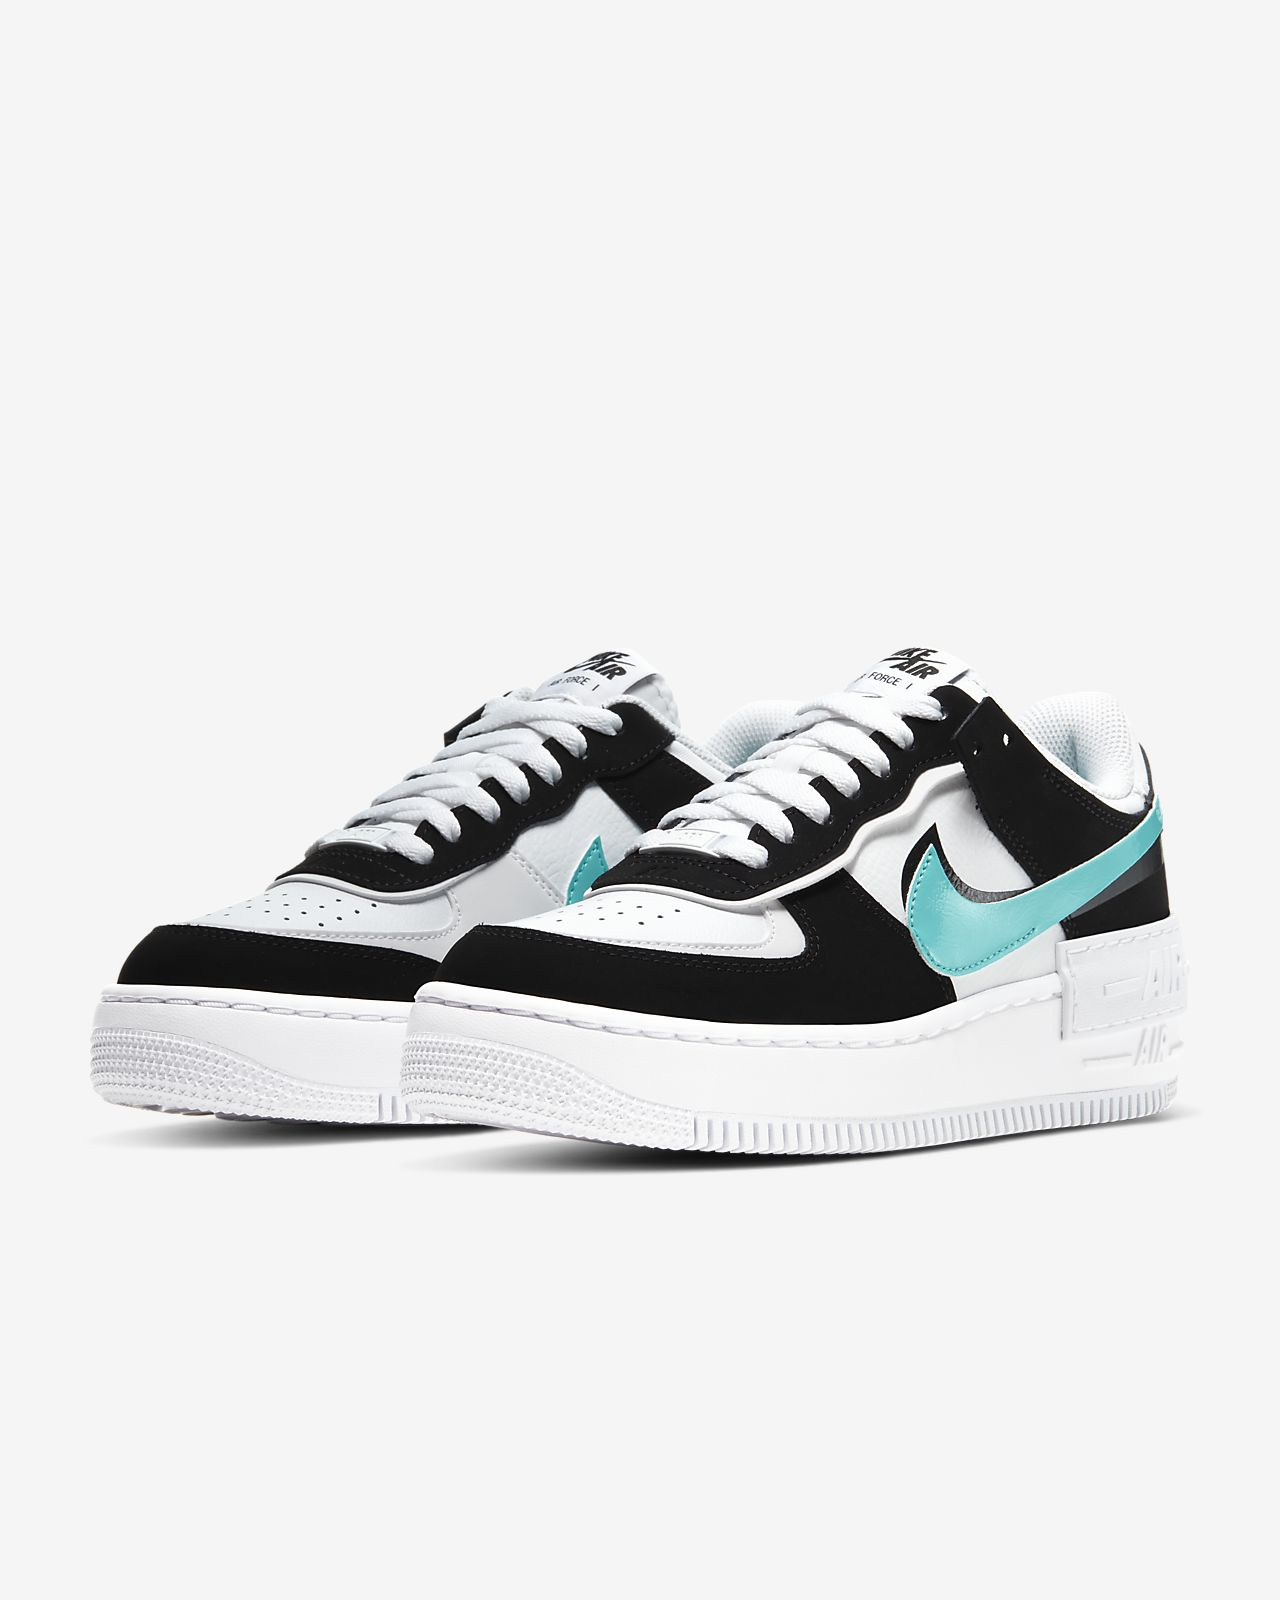 Nike Air Force 1 Shadow Aurora Sneakerstrendz Women's nike air force 1 shadow se casual shoes. nike air force 1 shadow aurora